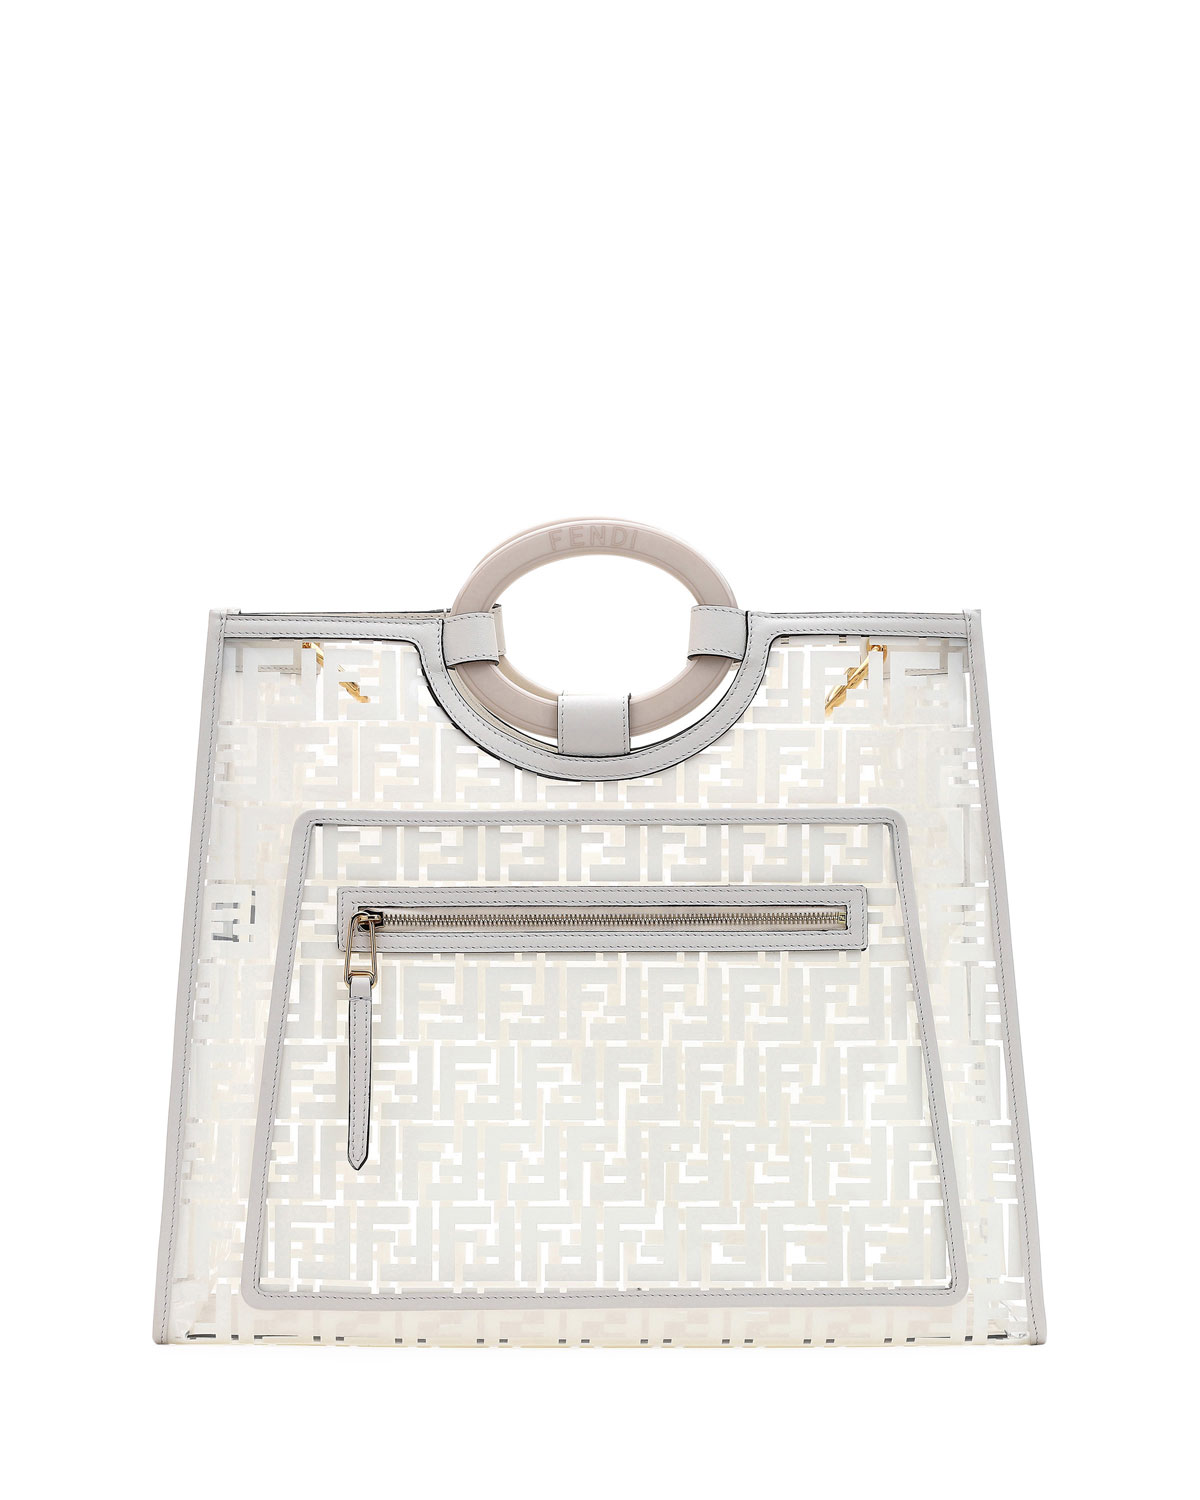 f5746cf90 Fendi Runaway Large Ff Pvc Shopper Tote Bag In White | ModeSens